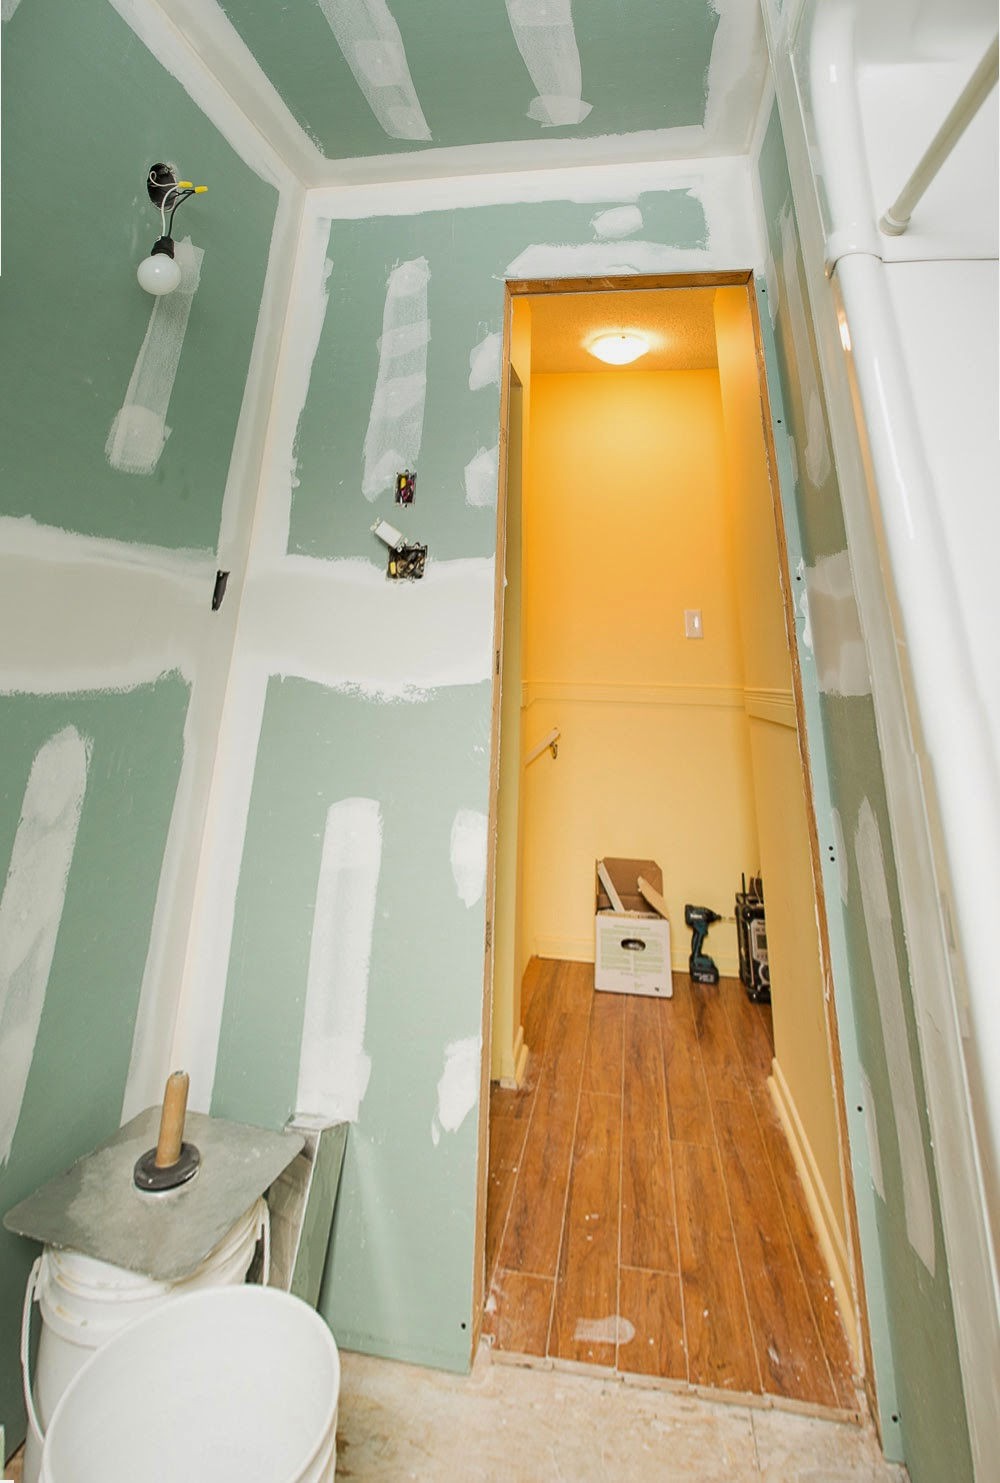 Carpentry Owen Sound Durham Grey County Bathroom Renovation Drywall Taping Painting Flooring Plumbing Renovation